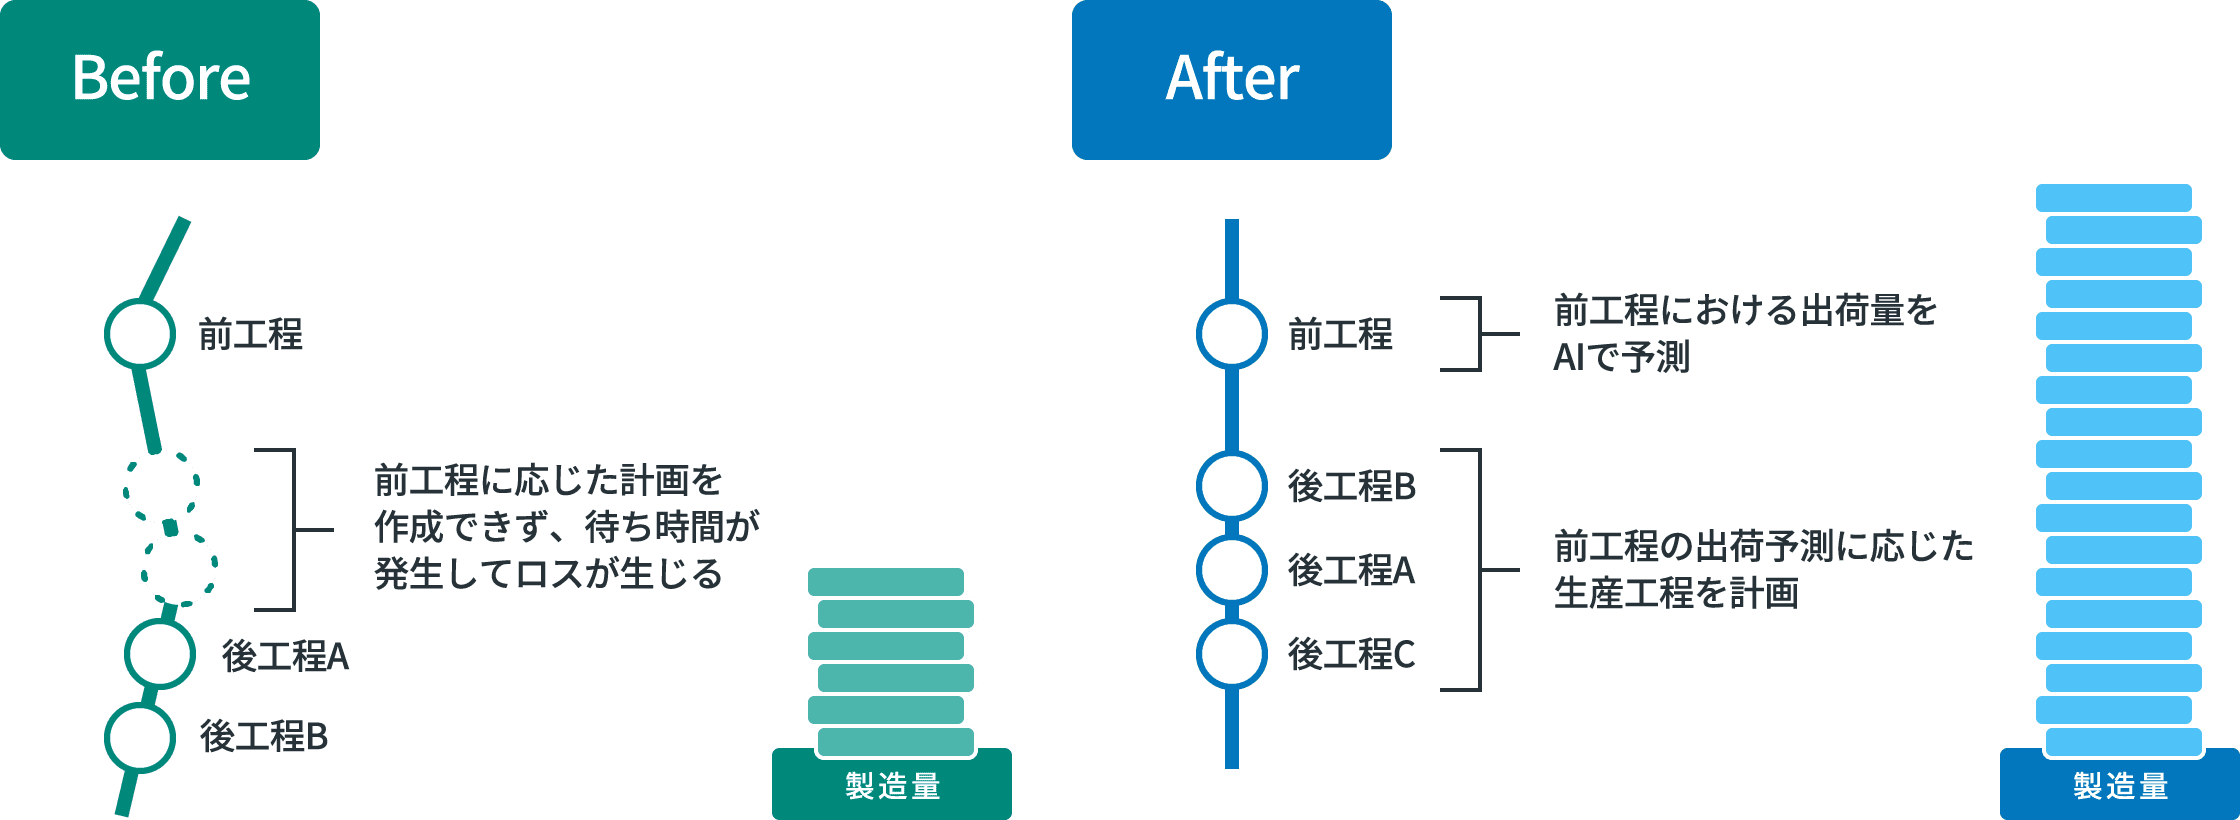 [Before / After]一日あたりの製造量を最大化